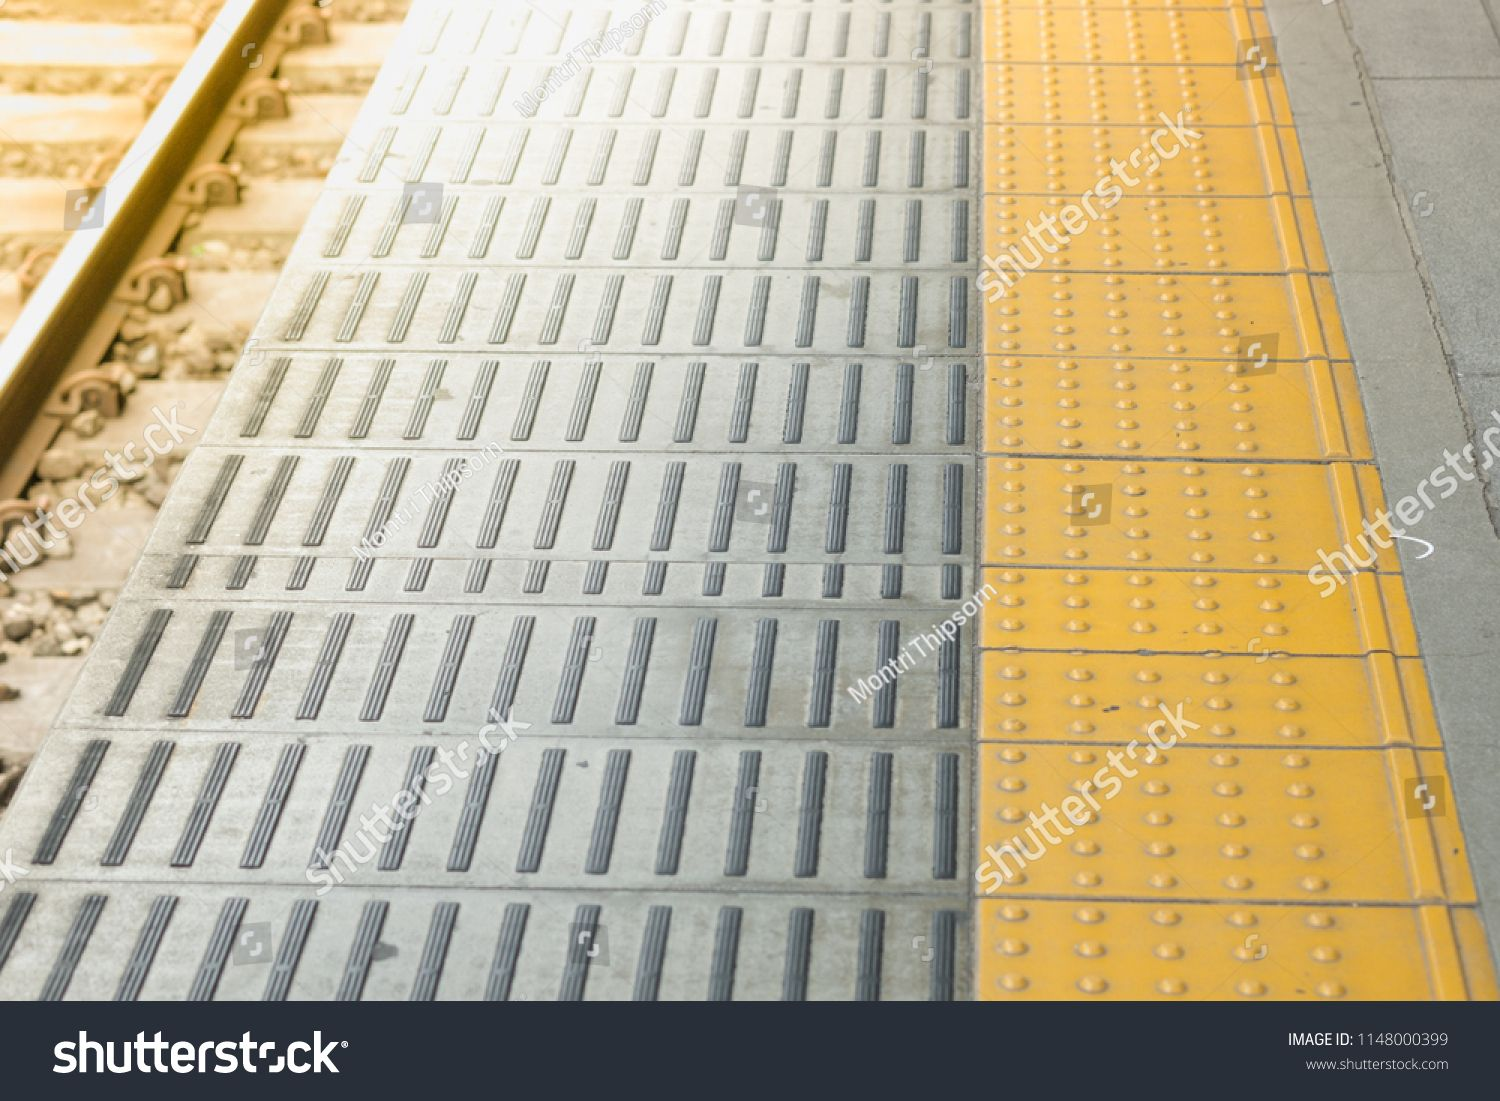 Tactile Paving For Blind Handicap On Tiles Pathway Walkway For Blindness People With Train Railway Ad Spon Tactile Paving Business Card Modern Pathways